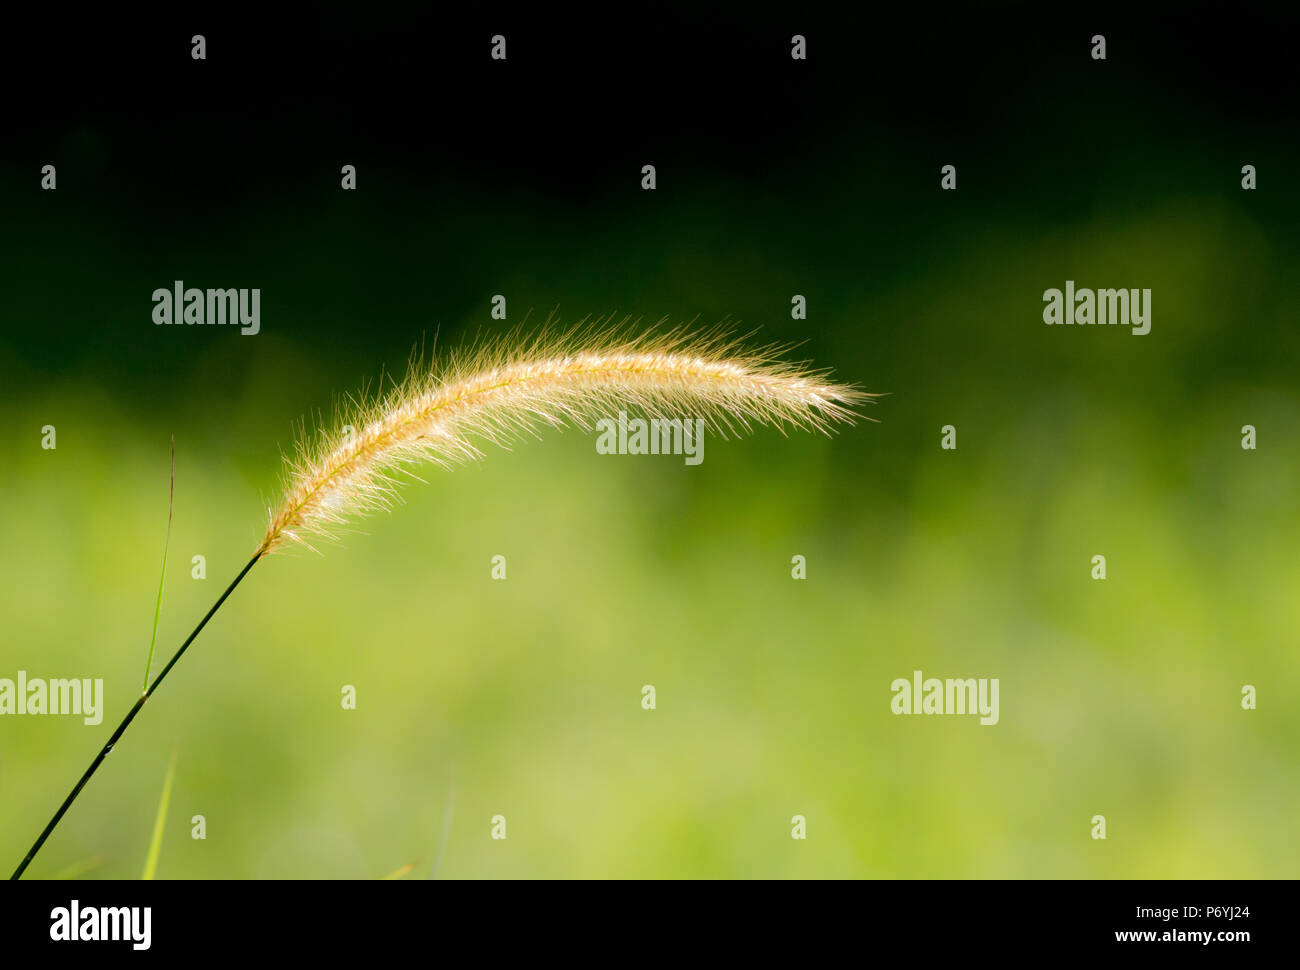 A single stalk of lalang grass swaying in the wind among the grassland. - Stock Image